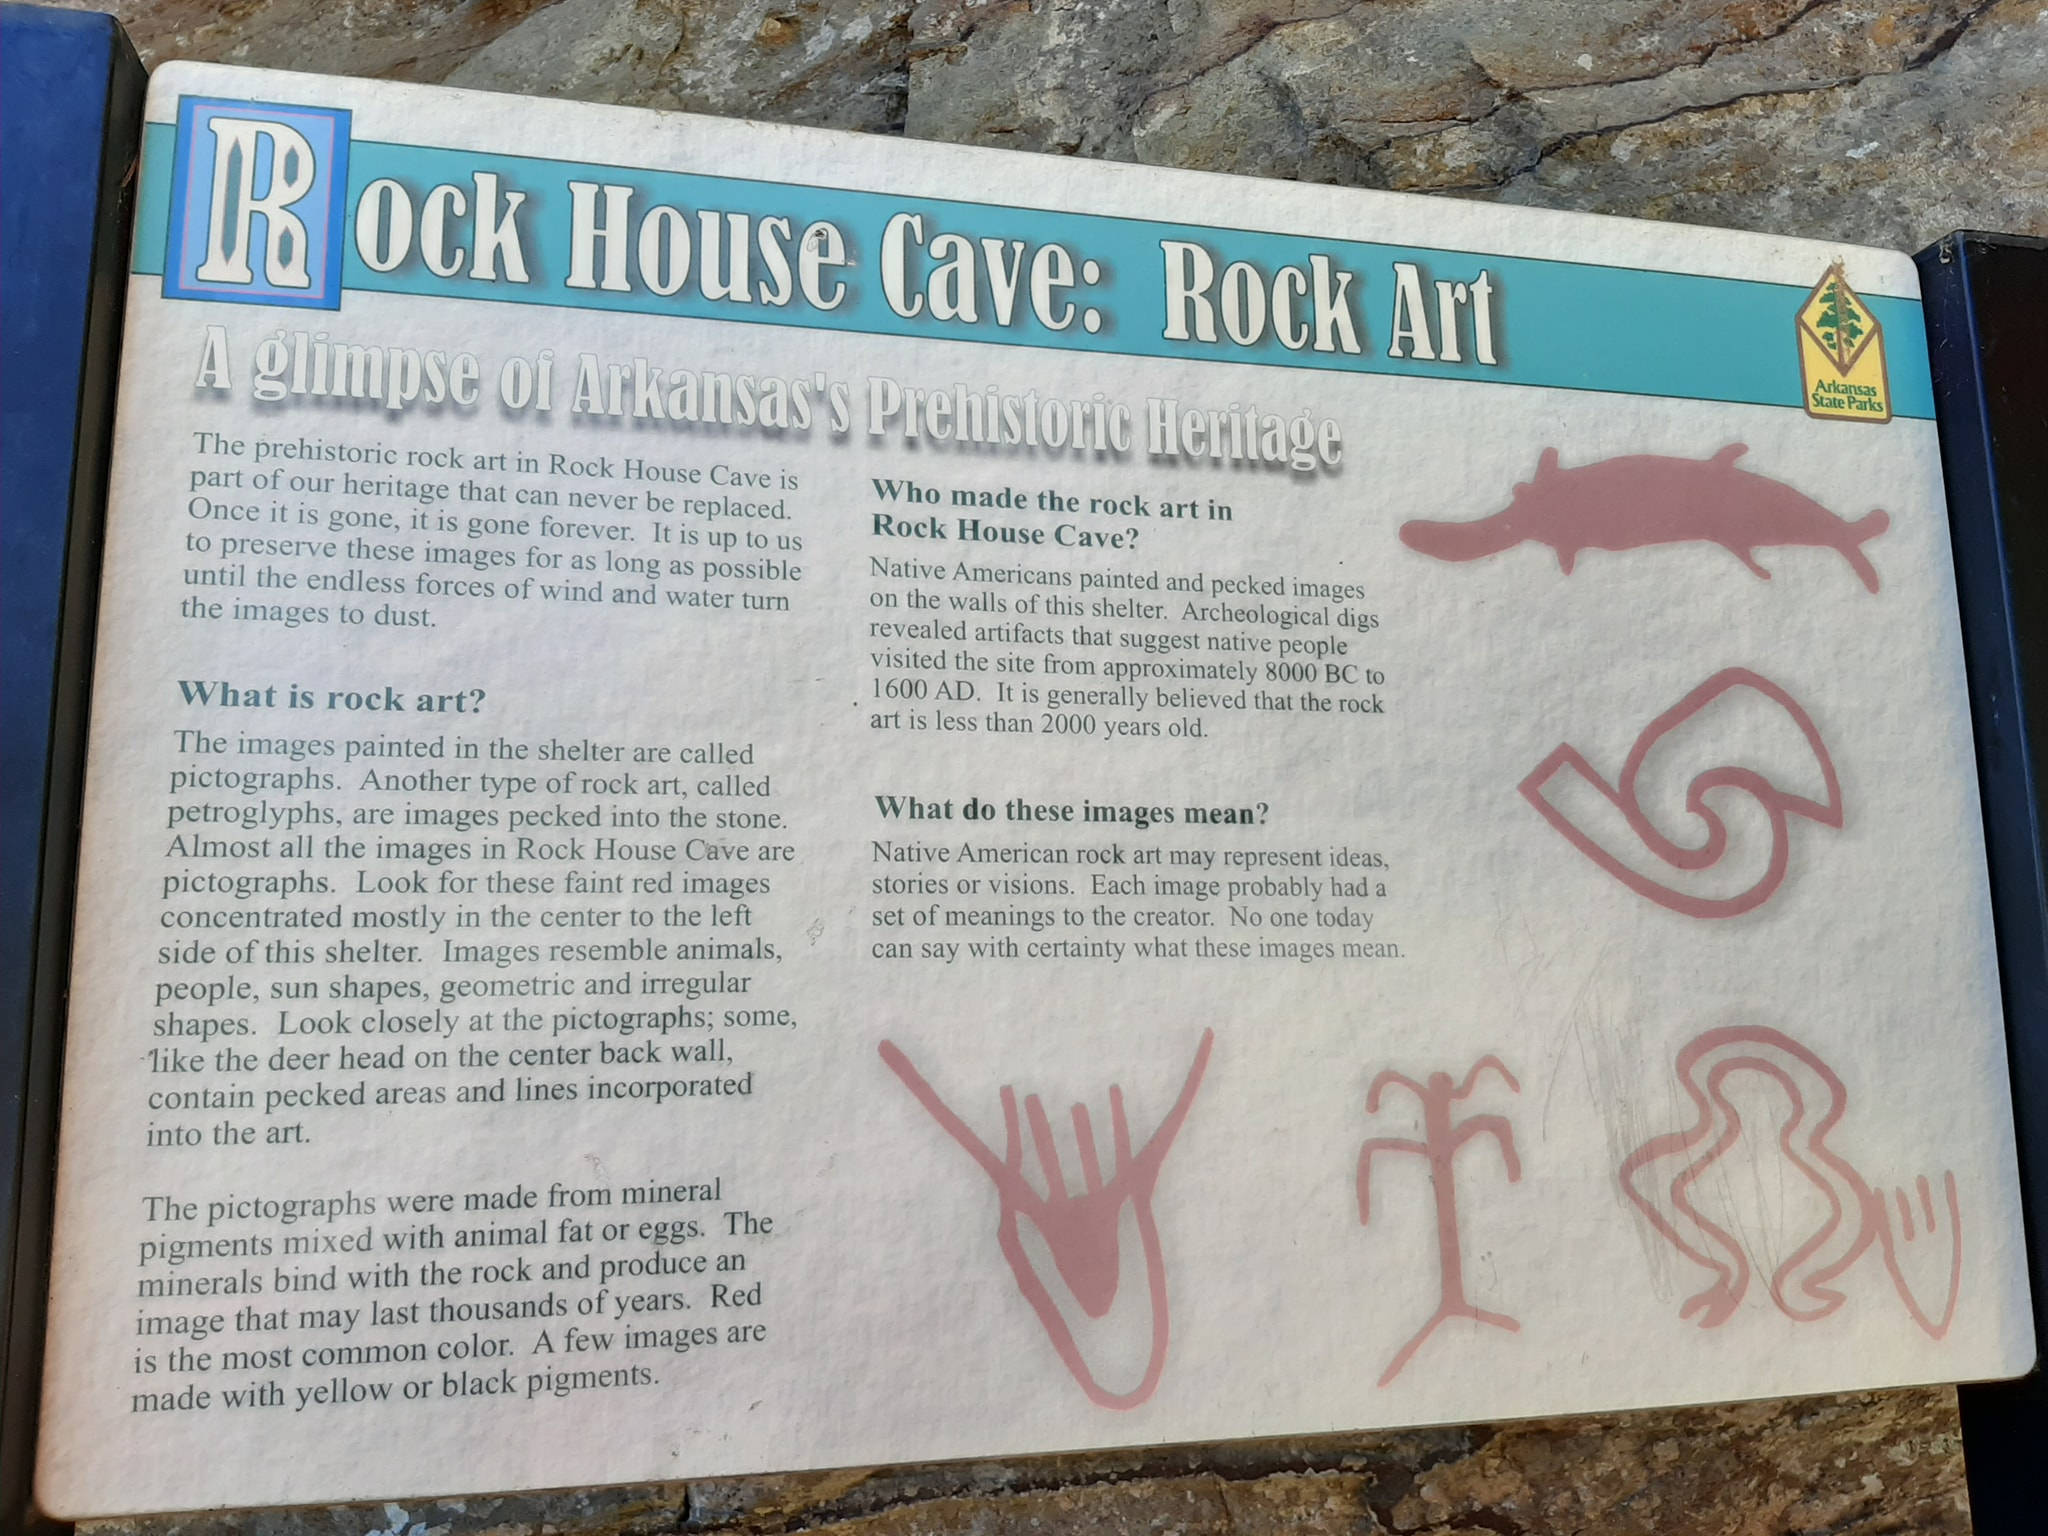 A sign near the entrance at Rock House Cave at Petit Jean State Park in Arkansas displays some of the rock art that can be found inside the bluff dwelling.